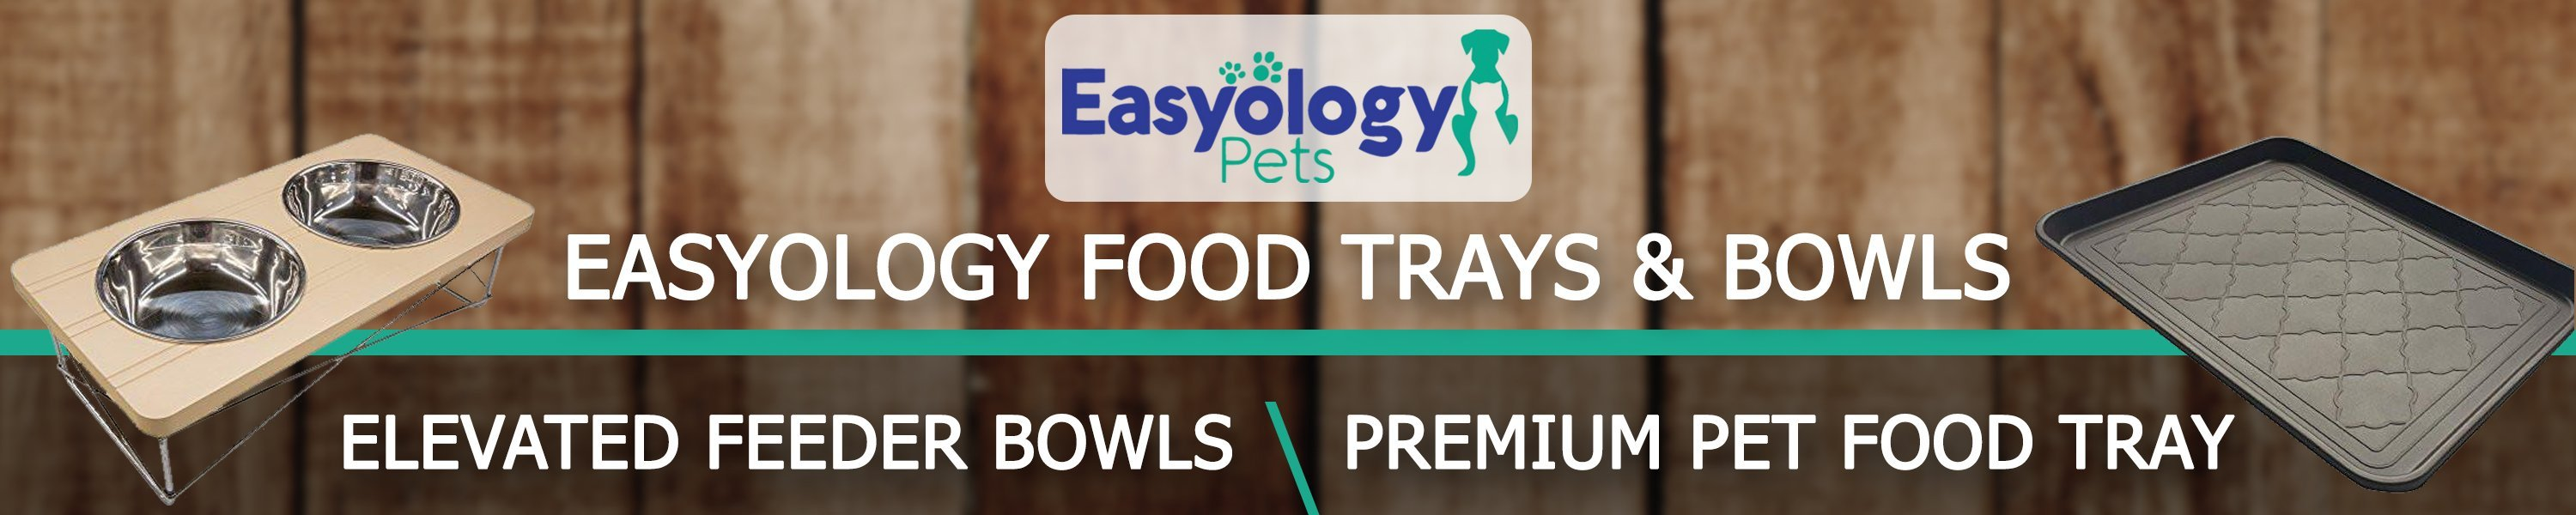 Easyology Food Trays and Bowls